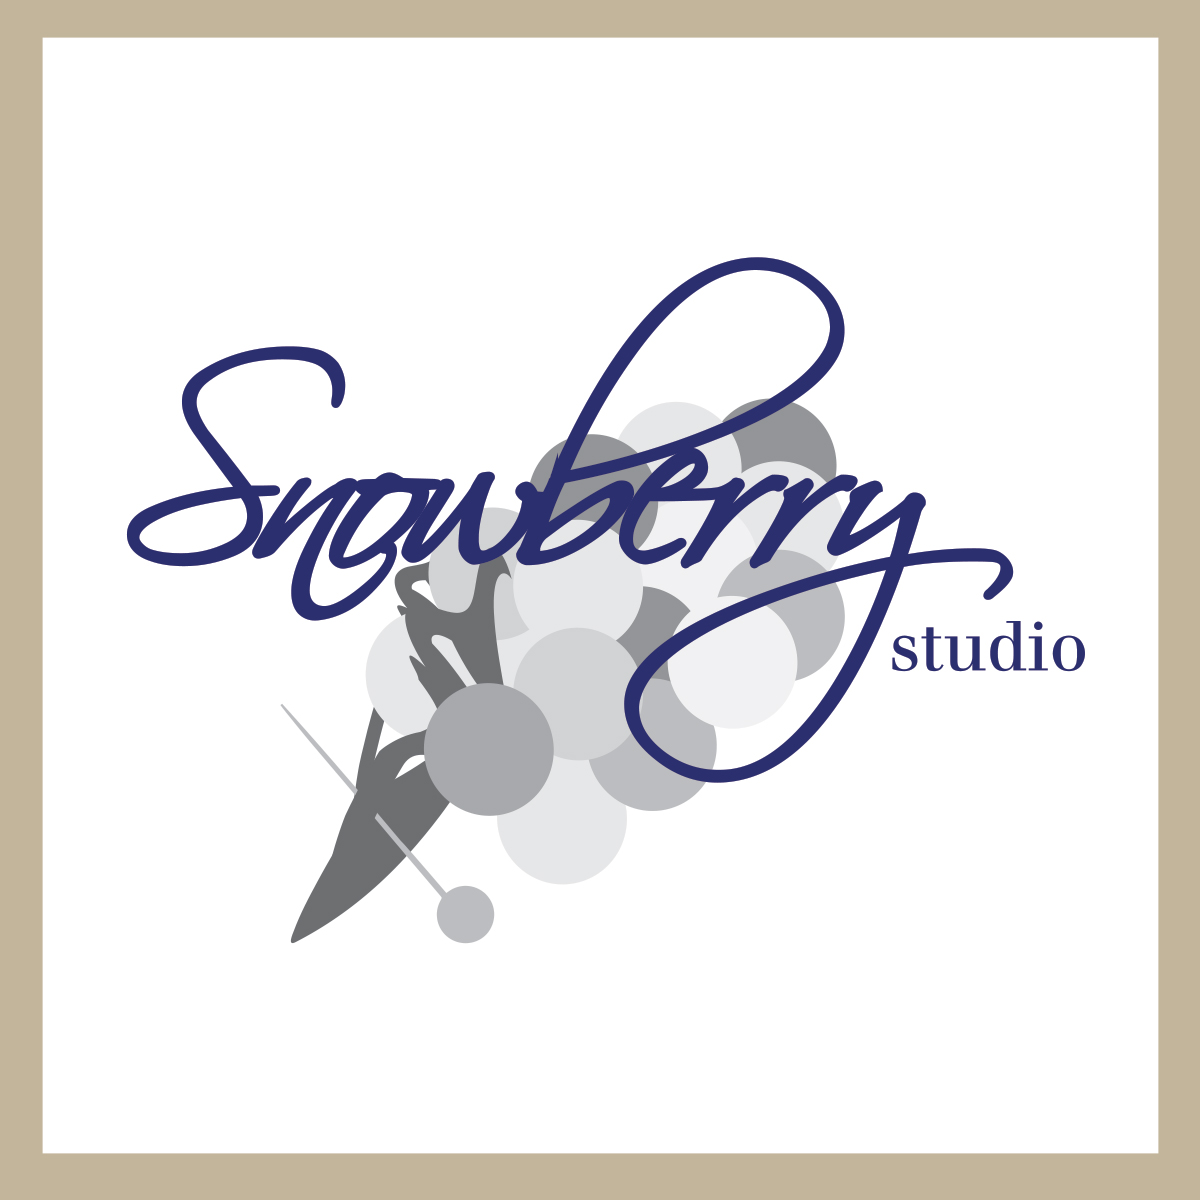 Snowberry Studio